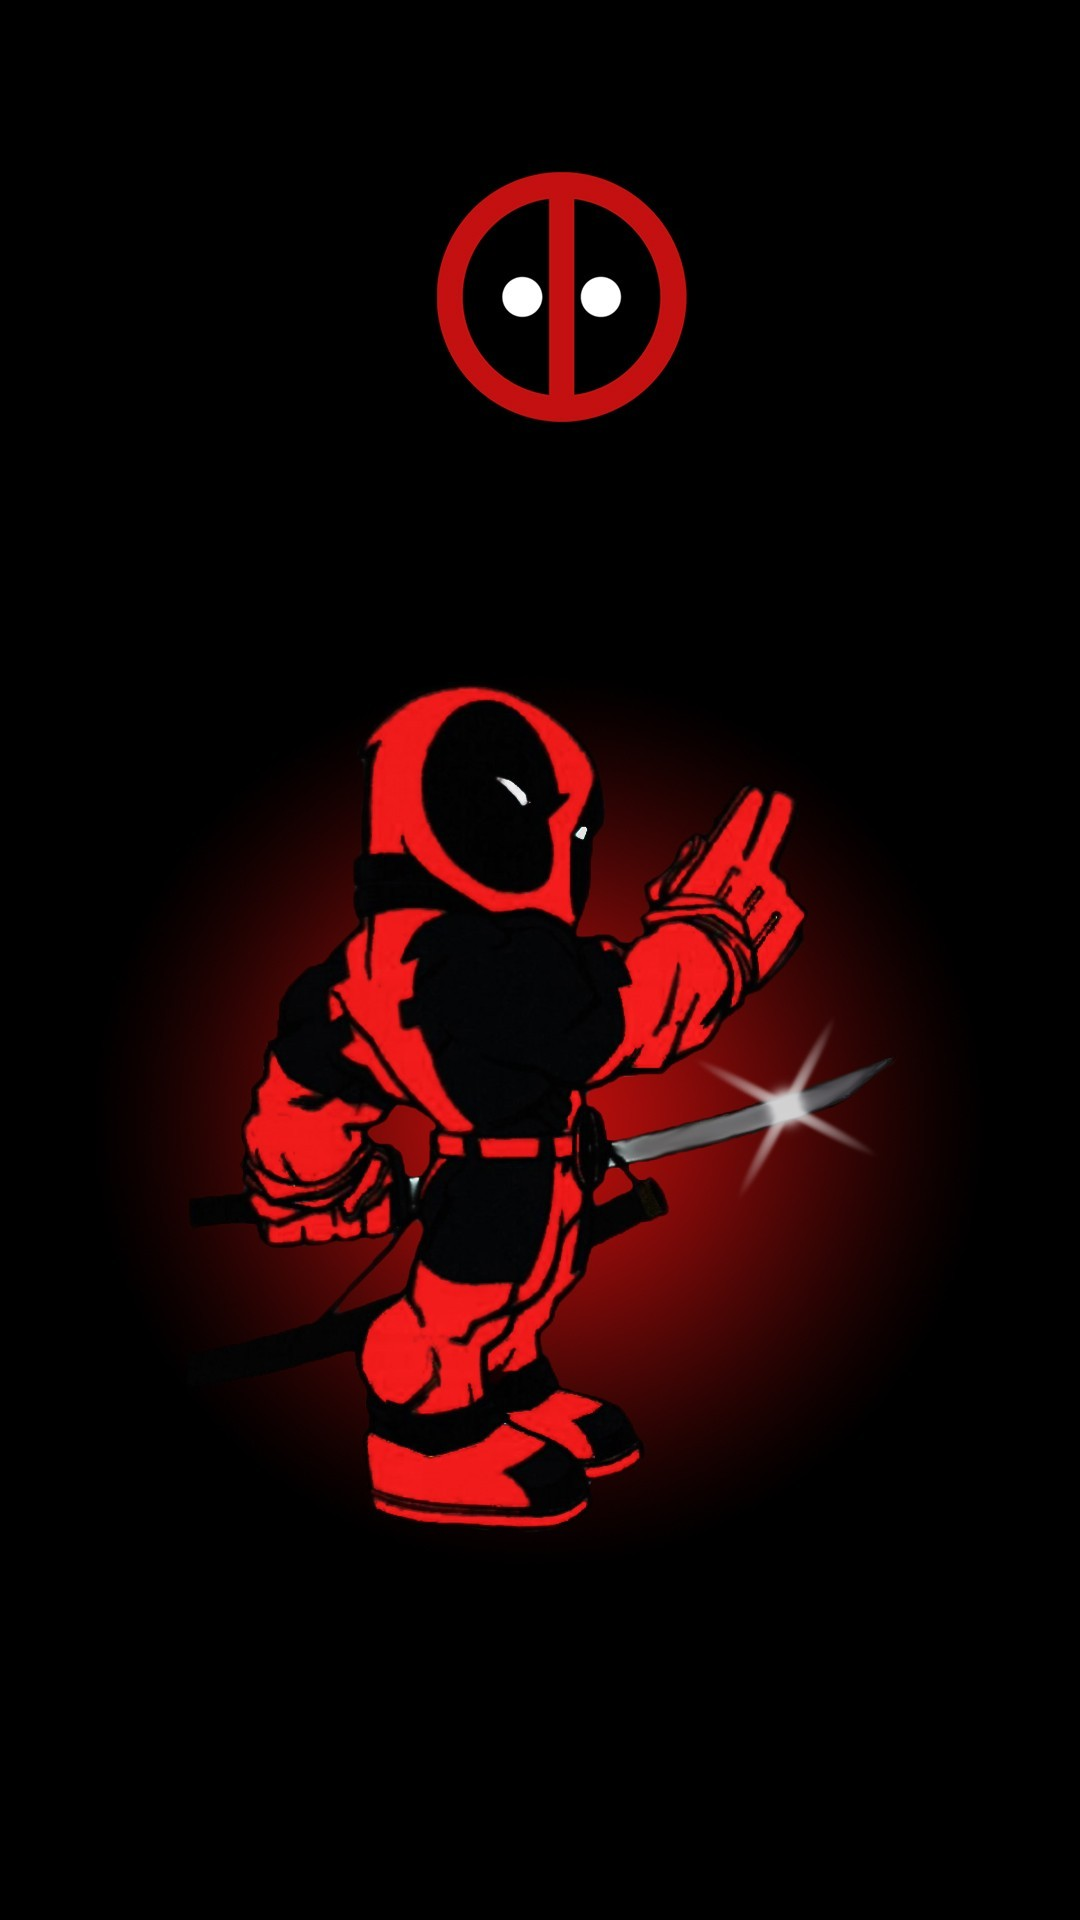 1080x1920  Deadpool Wallpaper 1080p Mobile by D-eject on DeviantArt